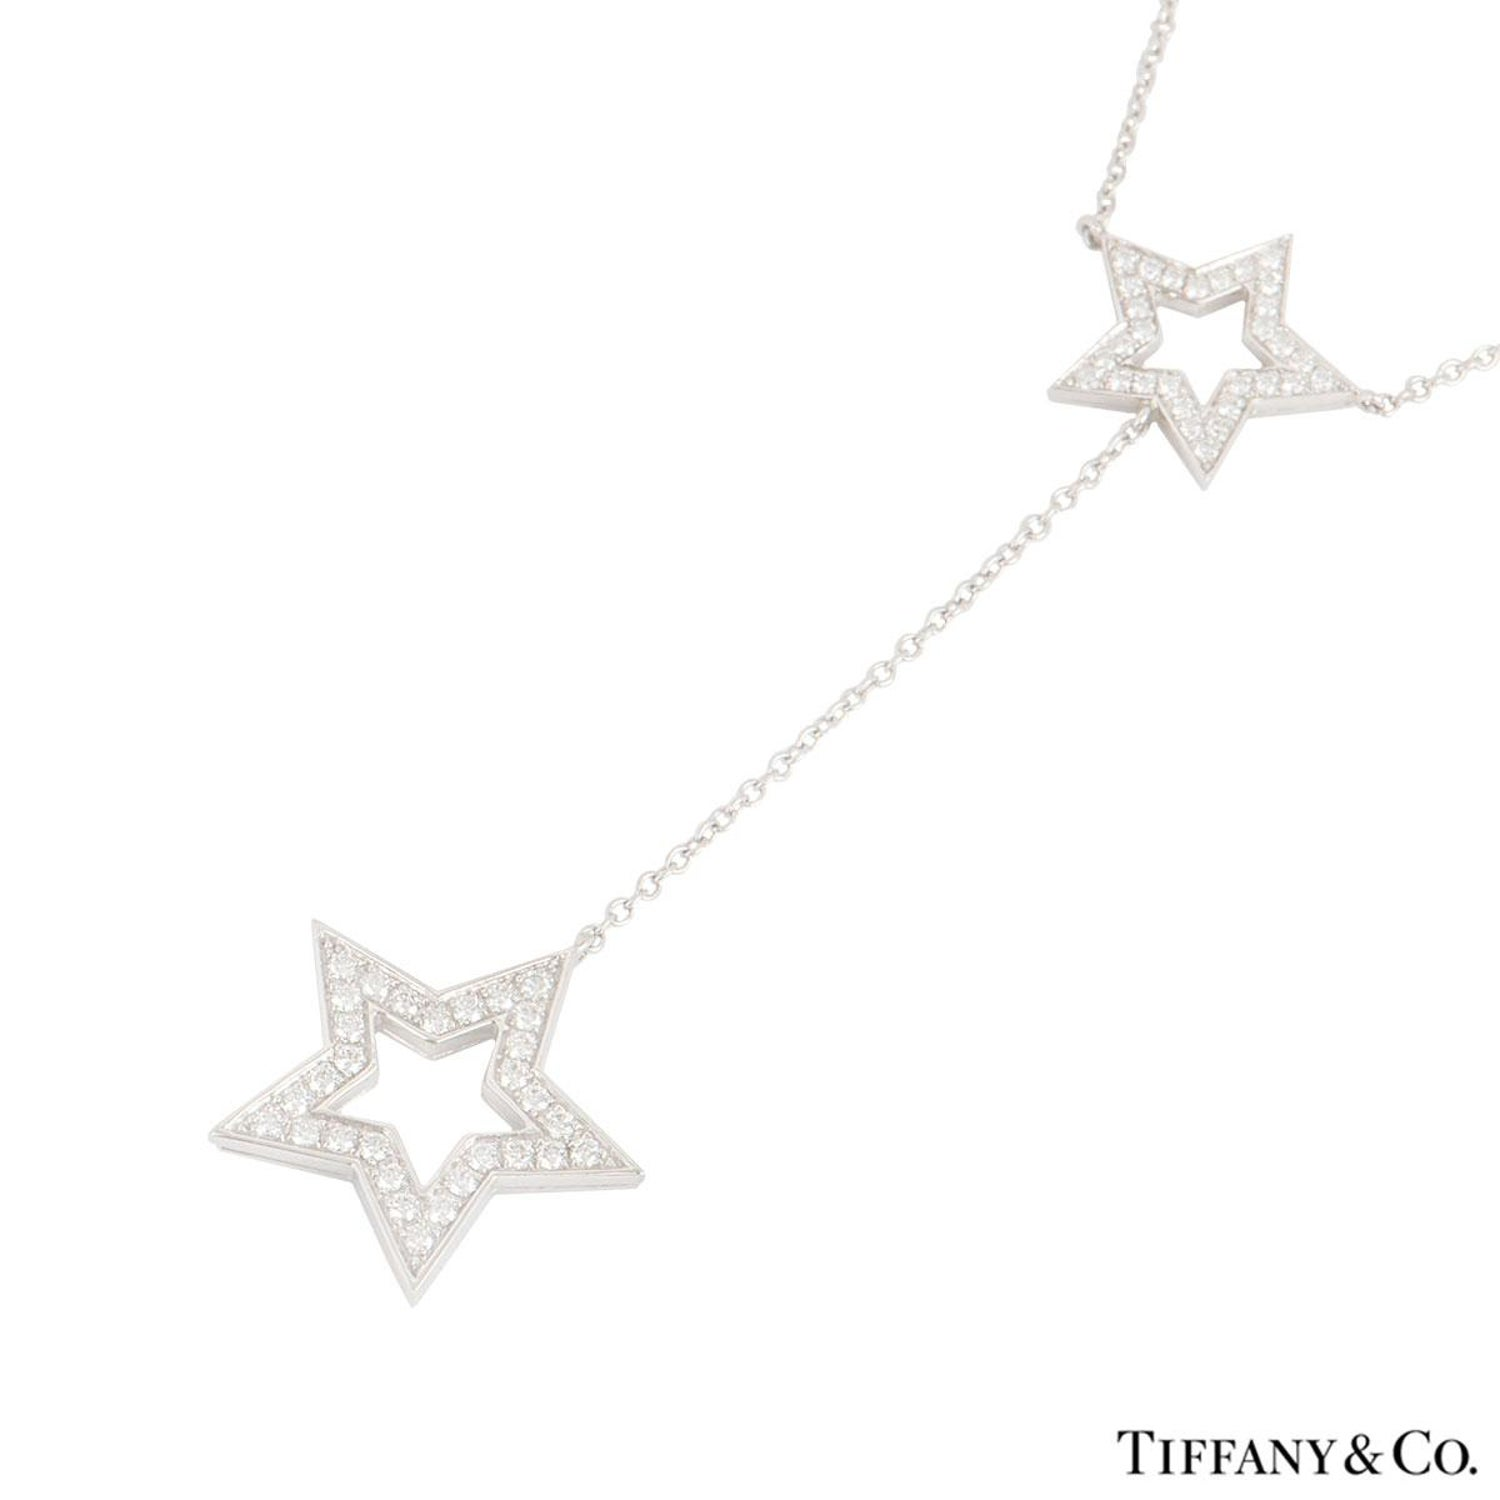 fa4b3bda3 Tiffany and Co. Platinum Diamond Set Star Necklace For Sale at 1stdibs